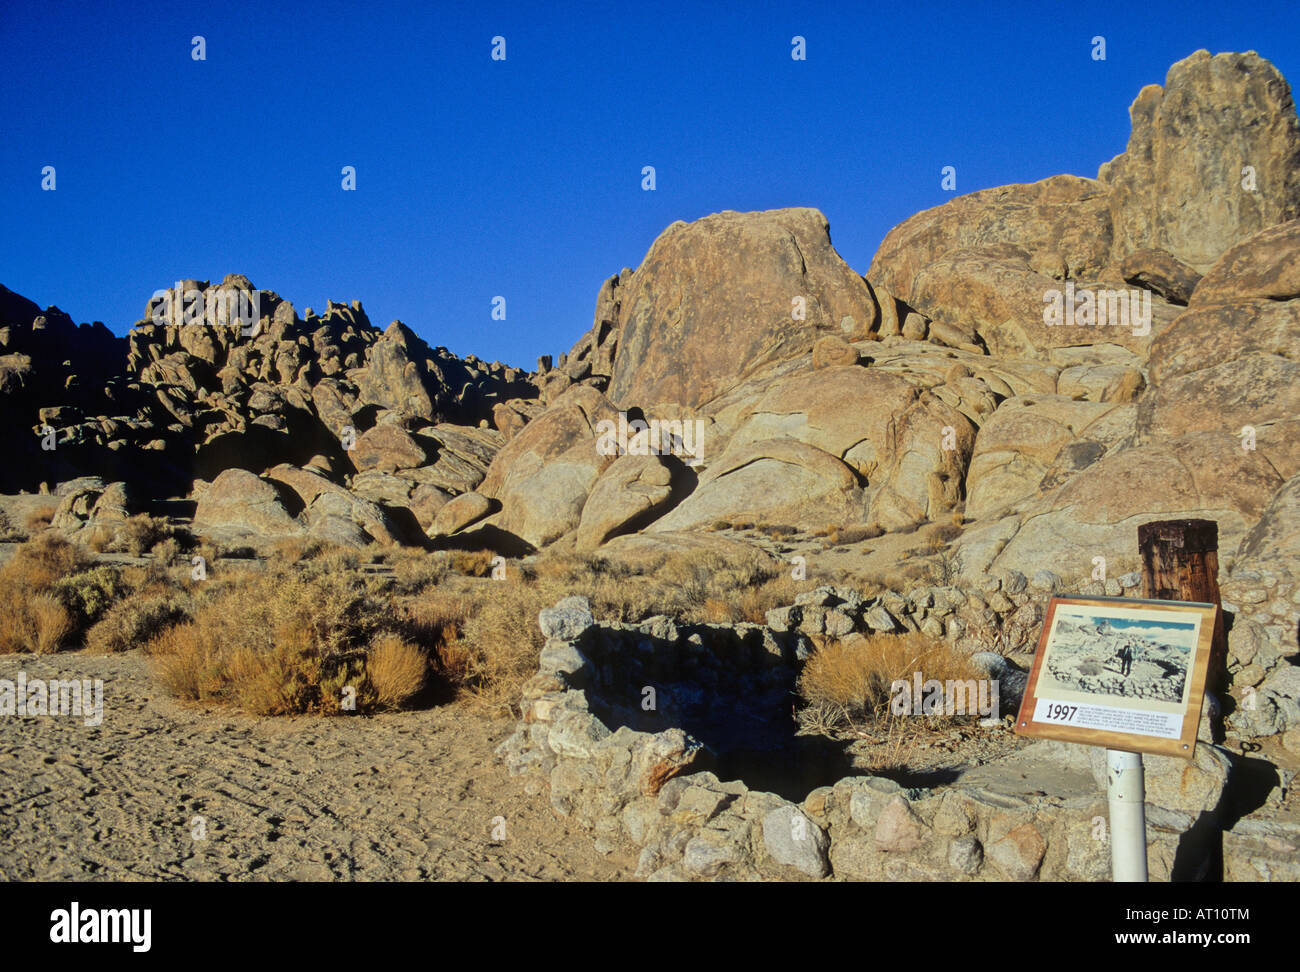 Interpretive sign placed at Alabama Hills during the Lone Pine Film Festival  points out film location site - Stock Image